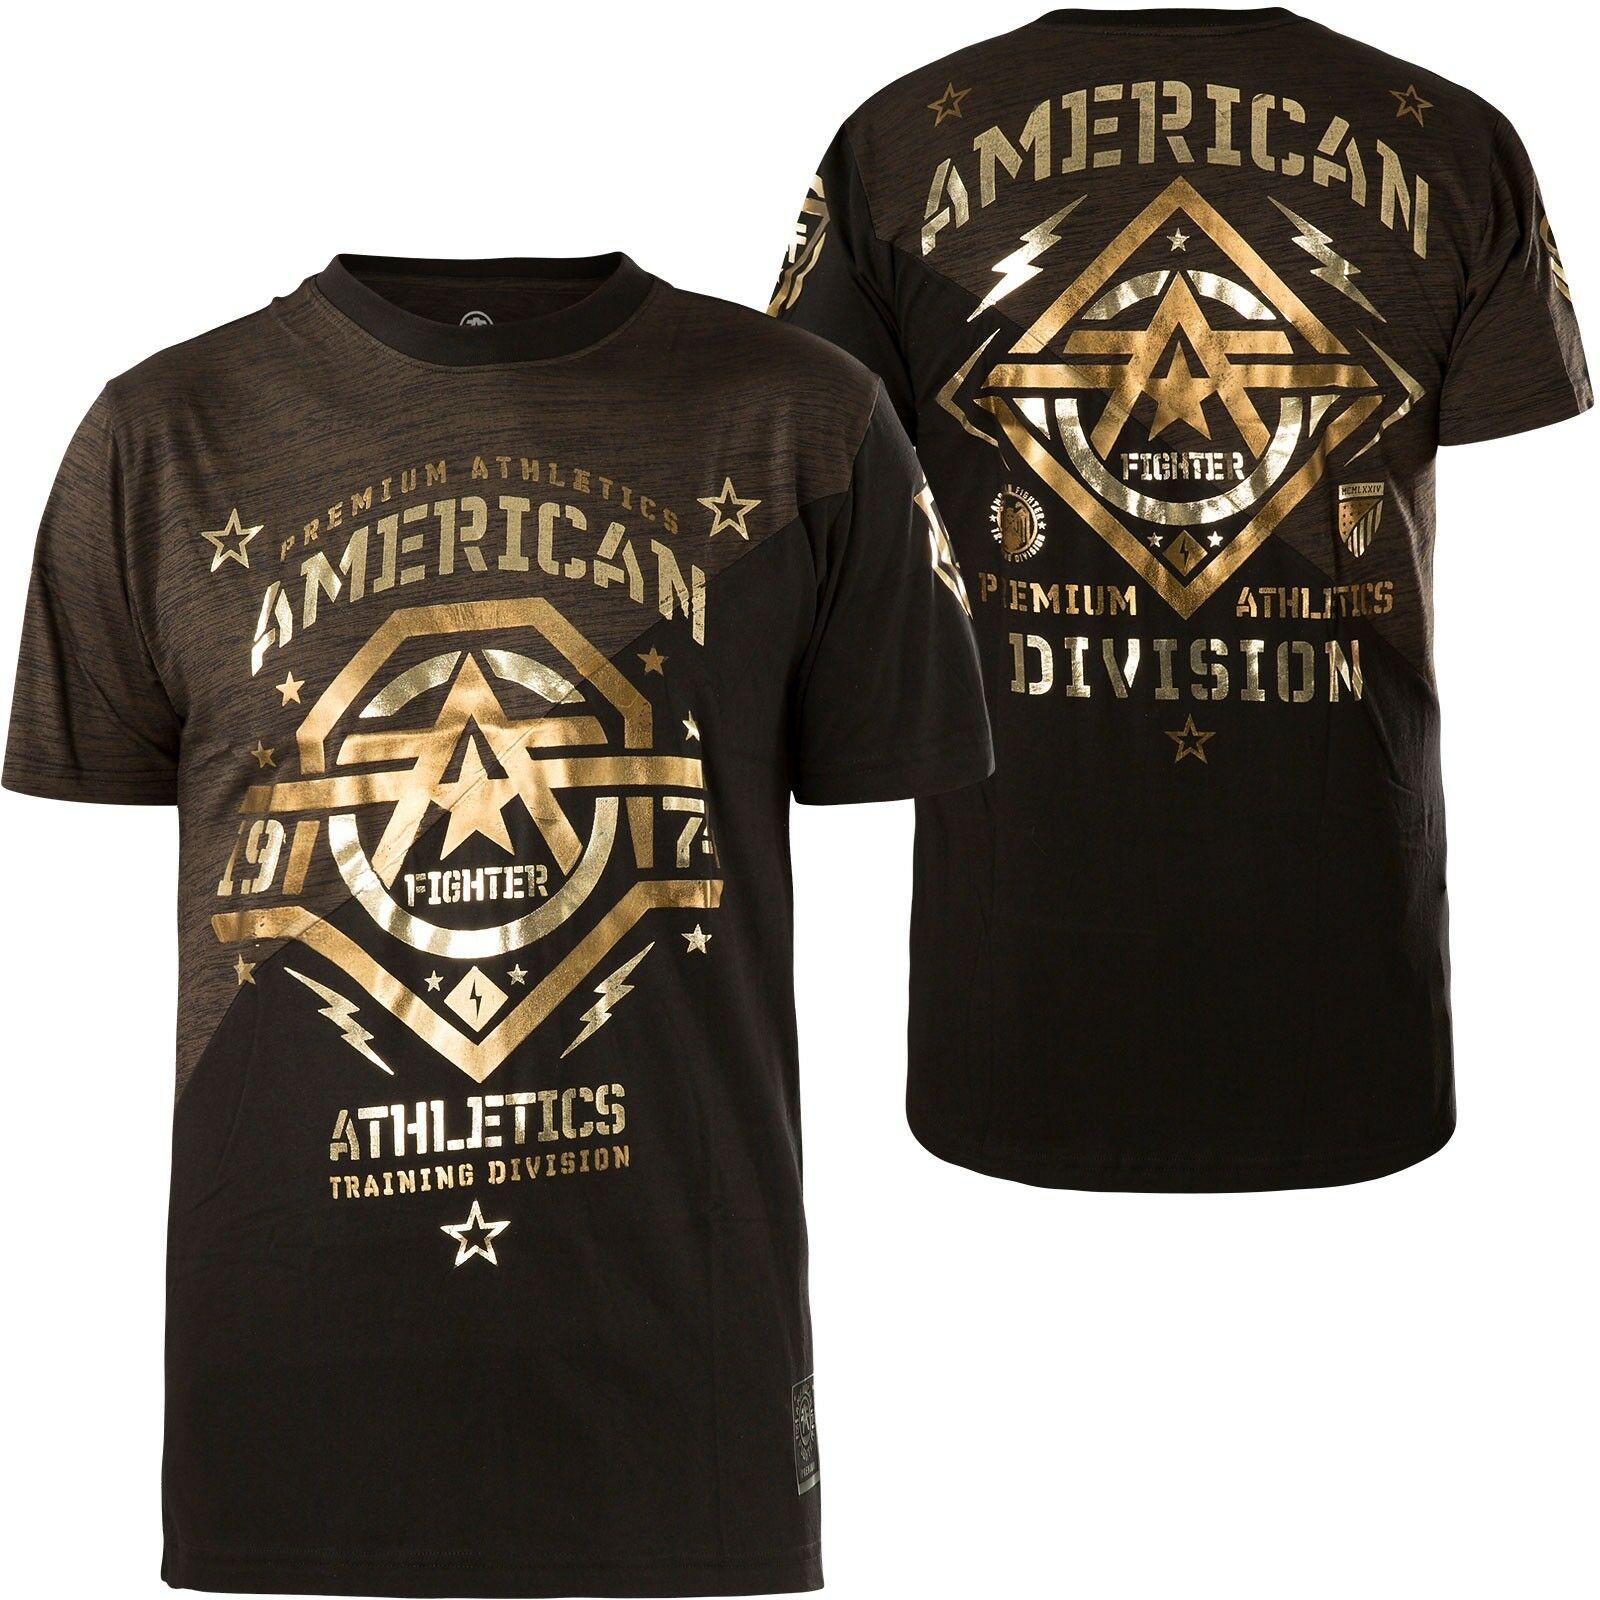 AMERICAN FIGHTER Affliction T-Shirt New Mexico brown black T-Shirts